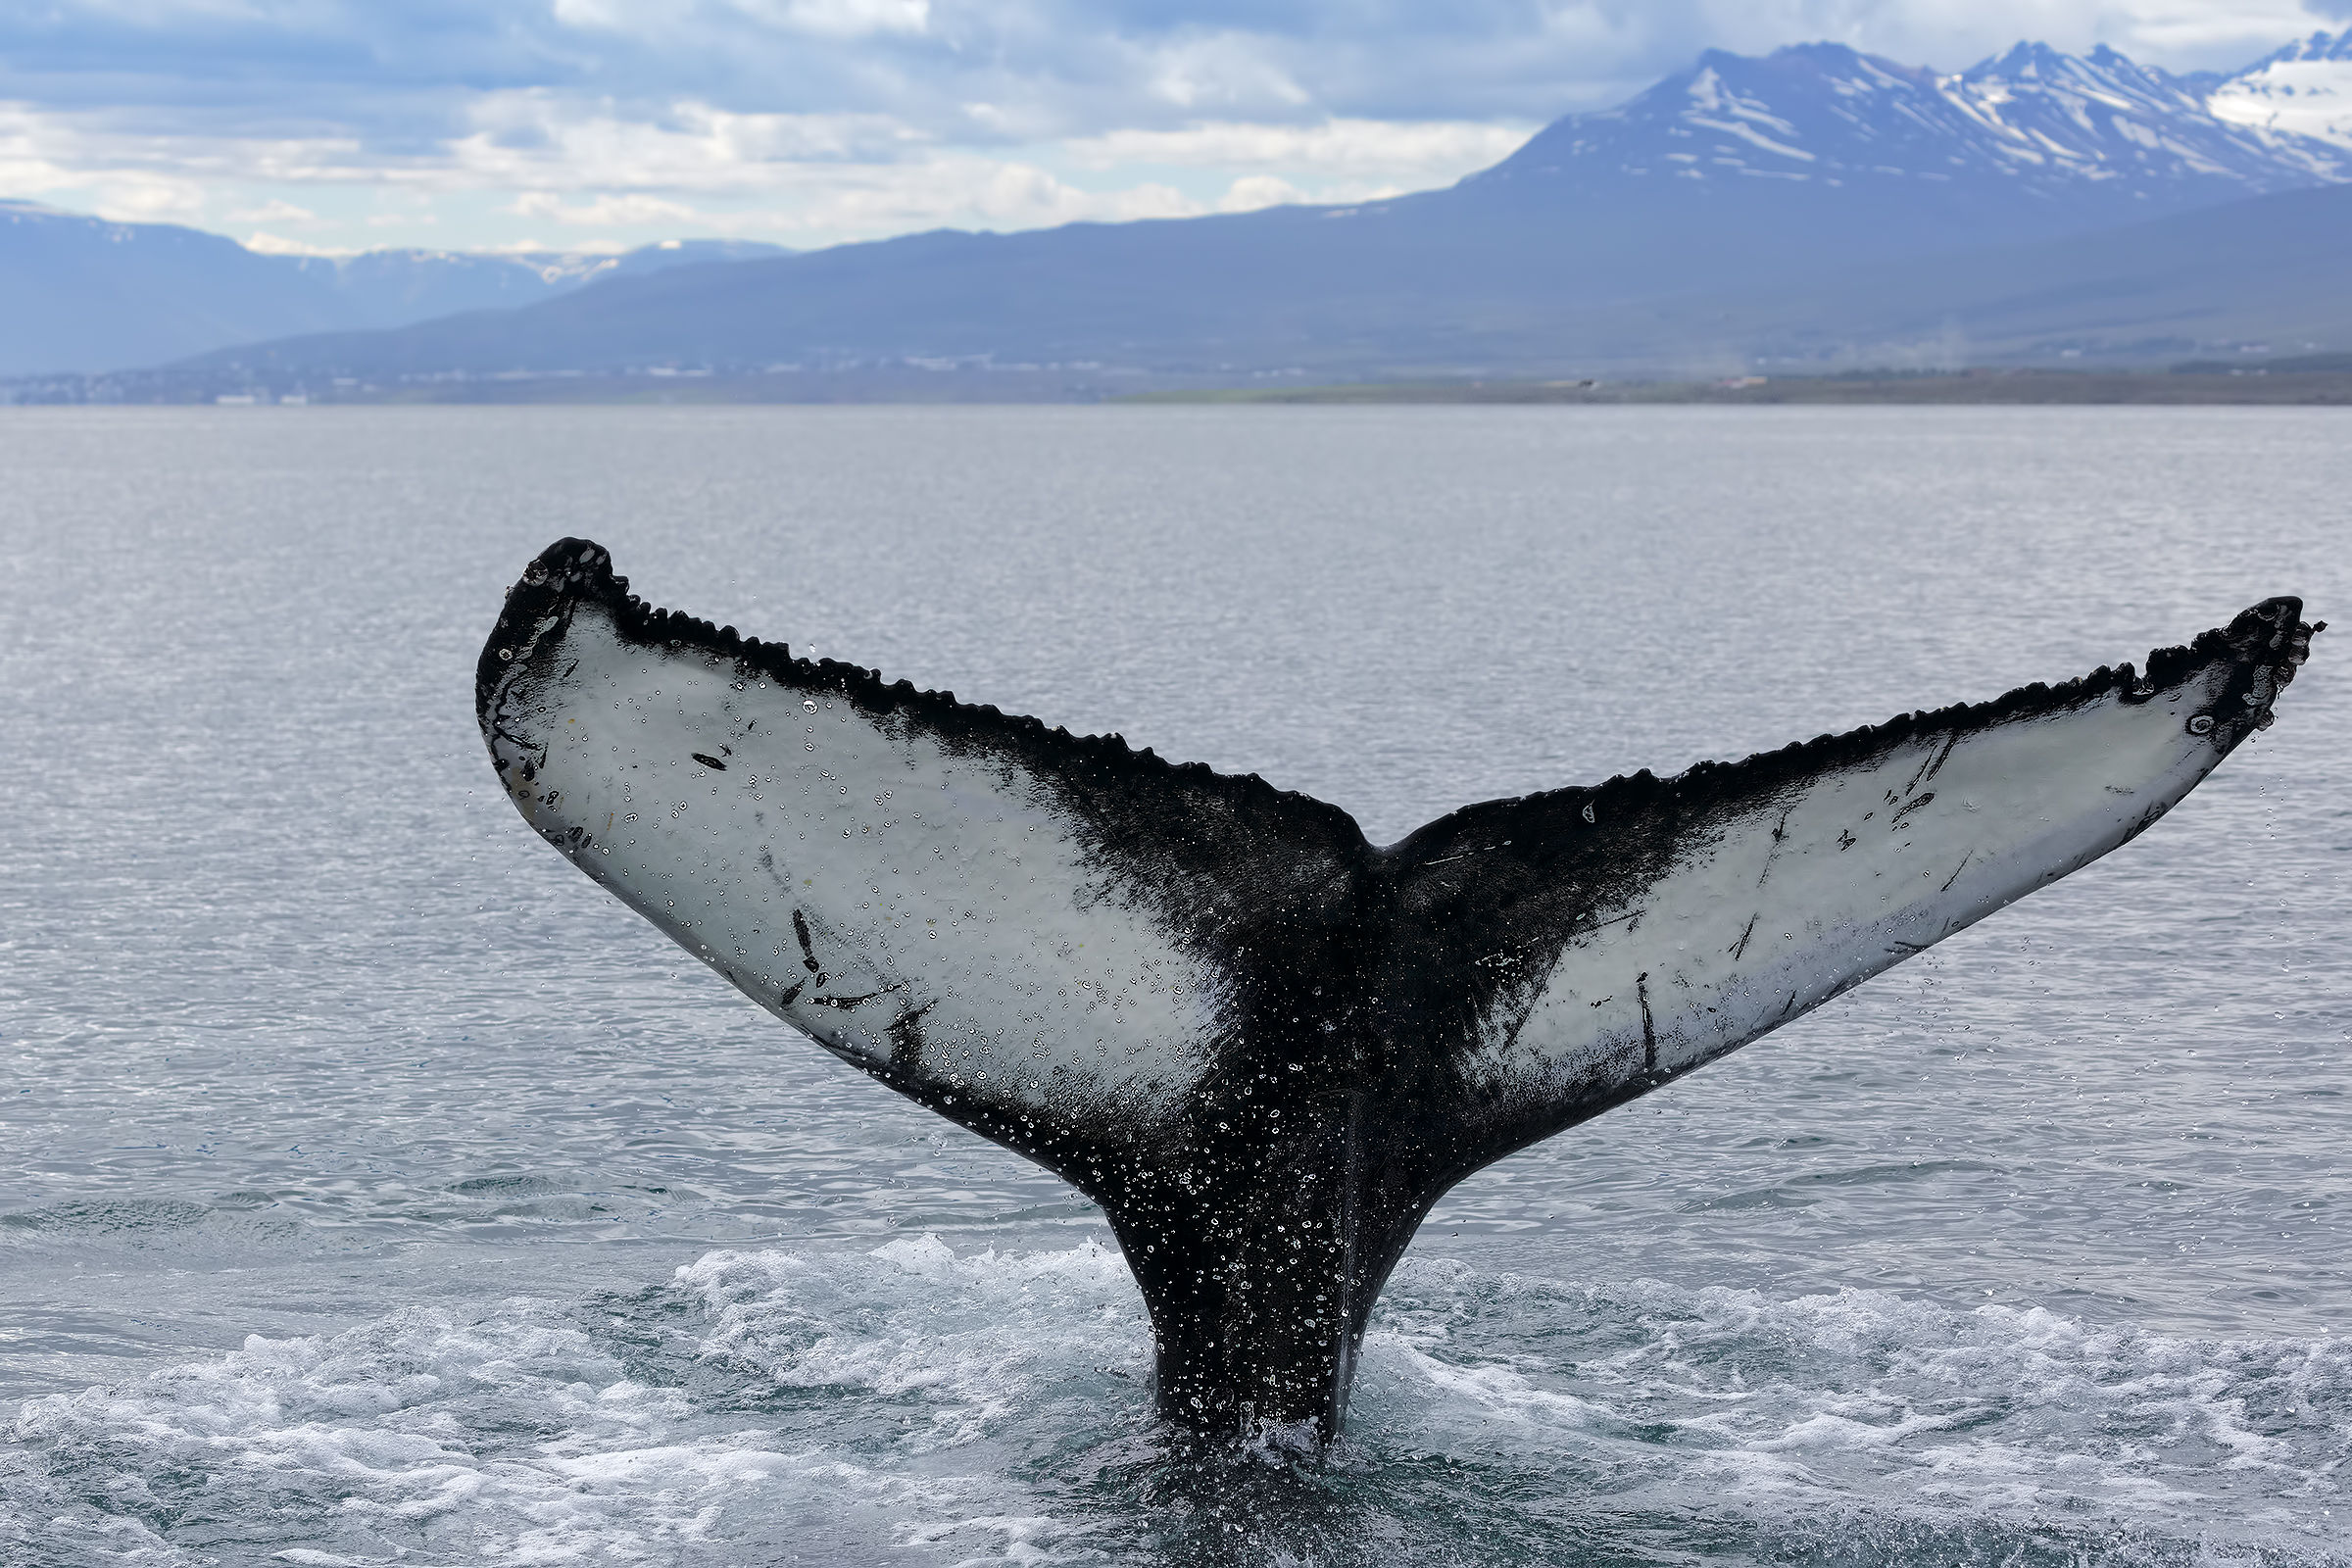 Another Whale...